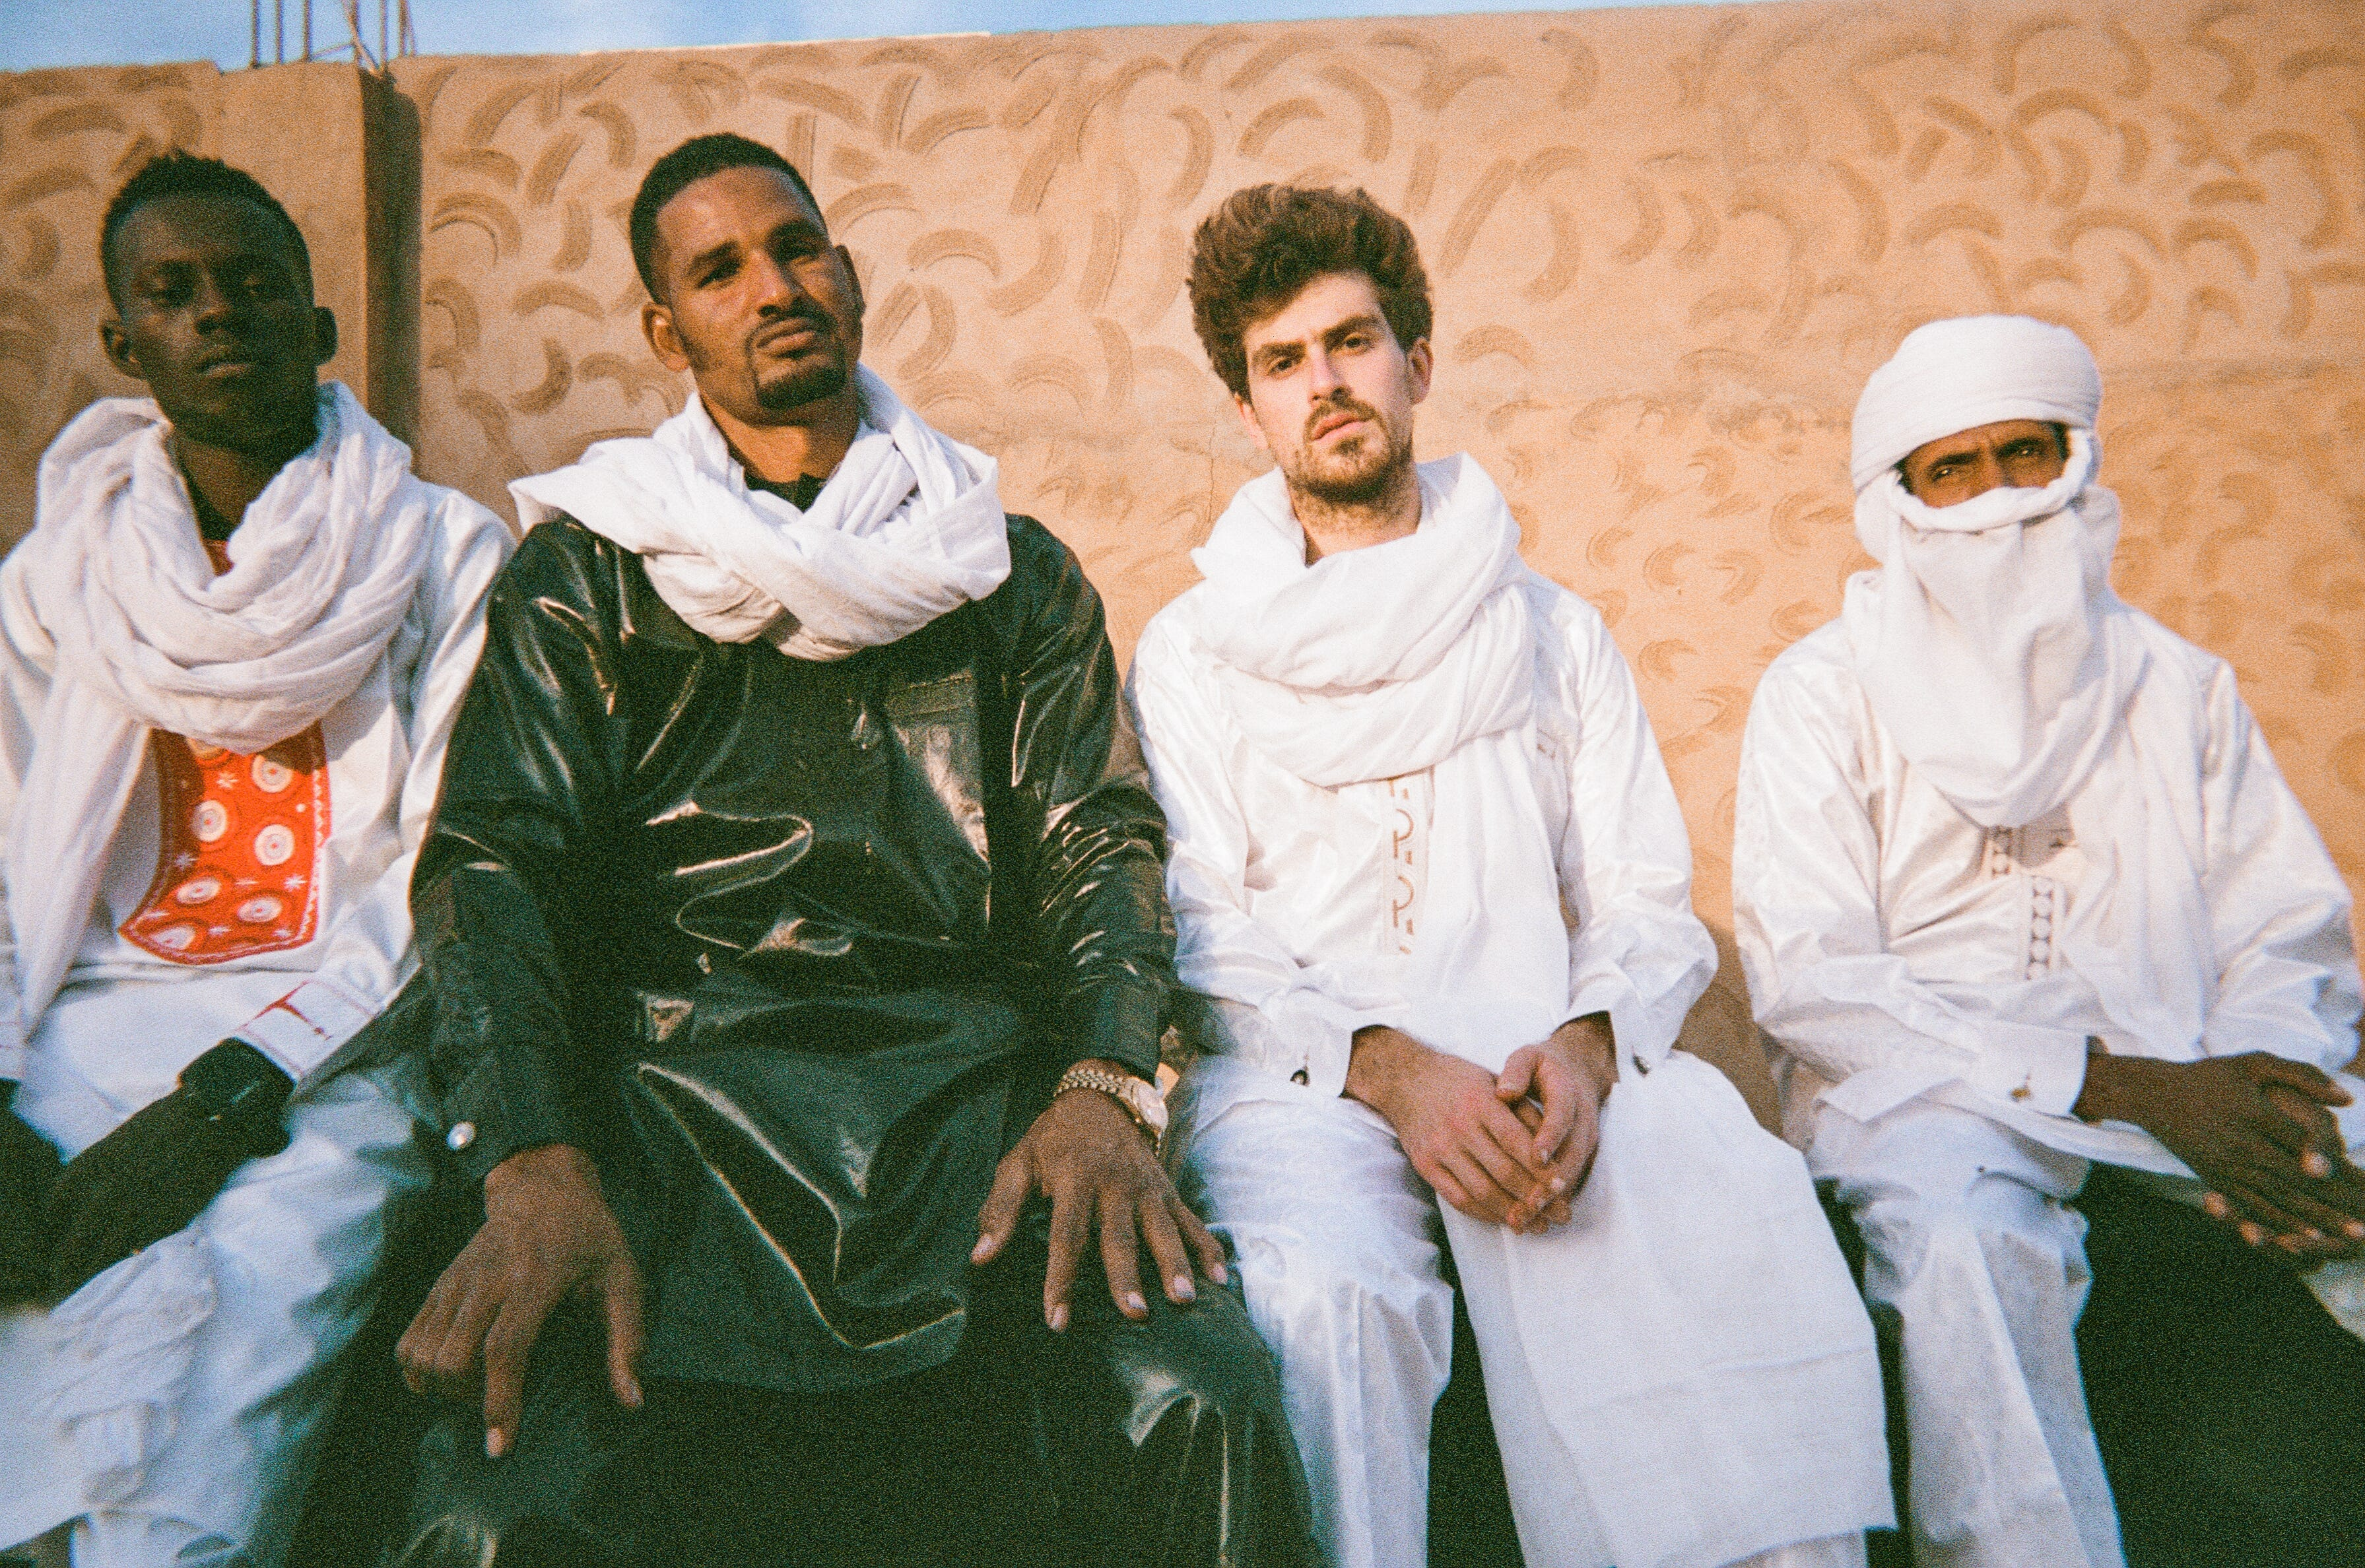 Musician Mdou Moctar about his work:  Each of the songs is like a piece of me